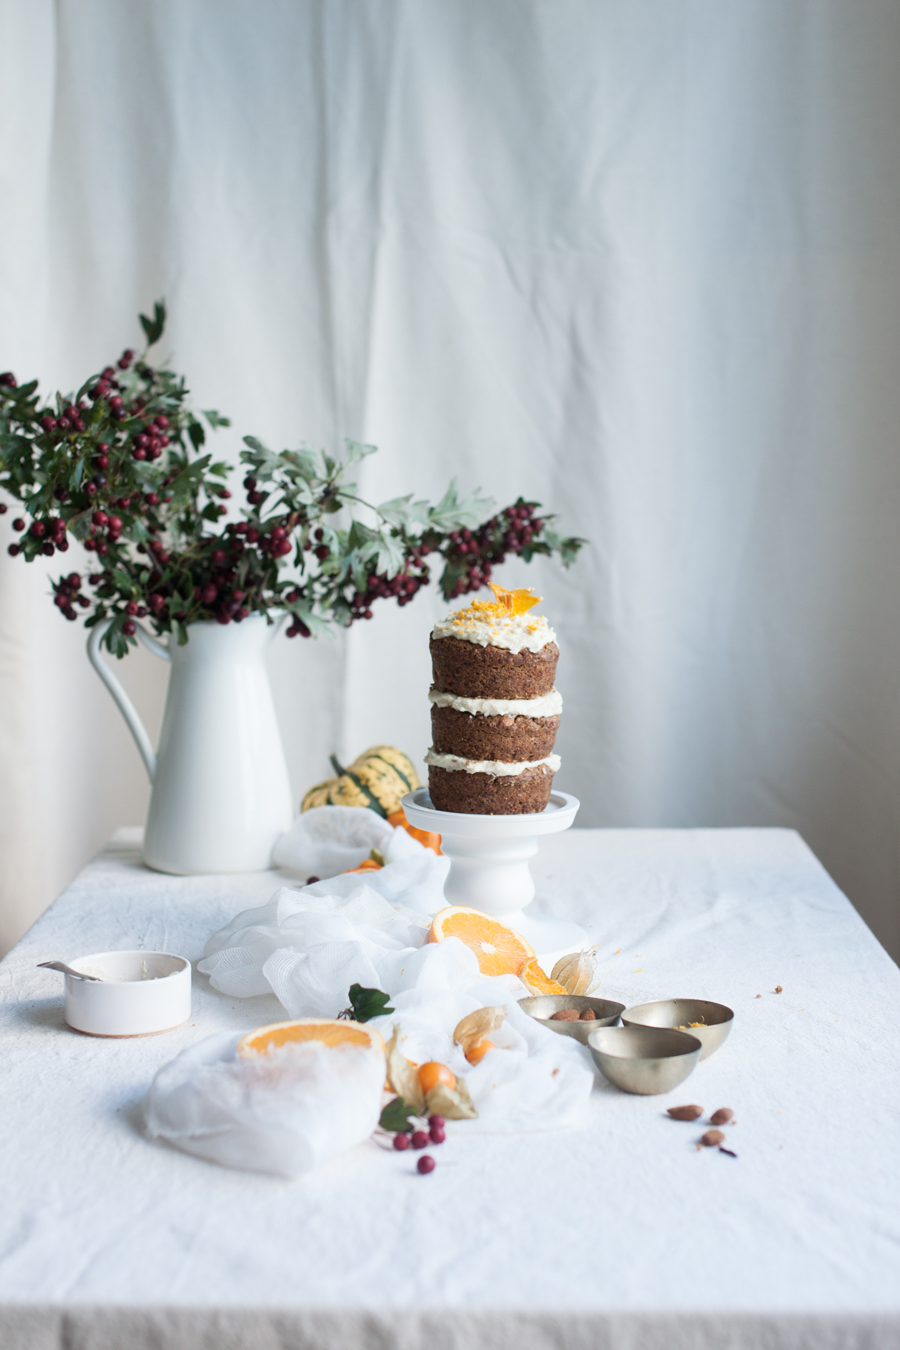 How to make mini vegan pumpkin and orange layer cake with raw almond frosting - The Little Plantation